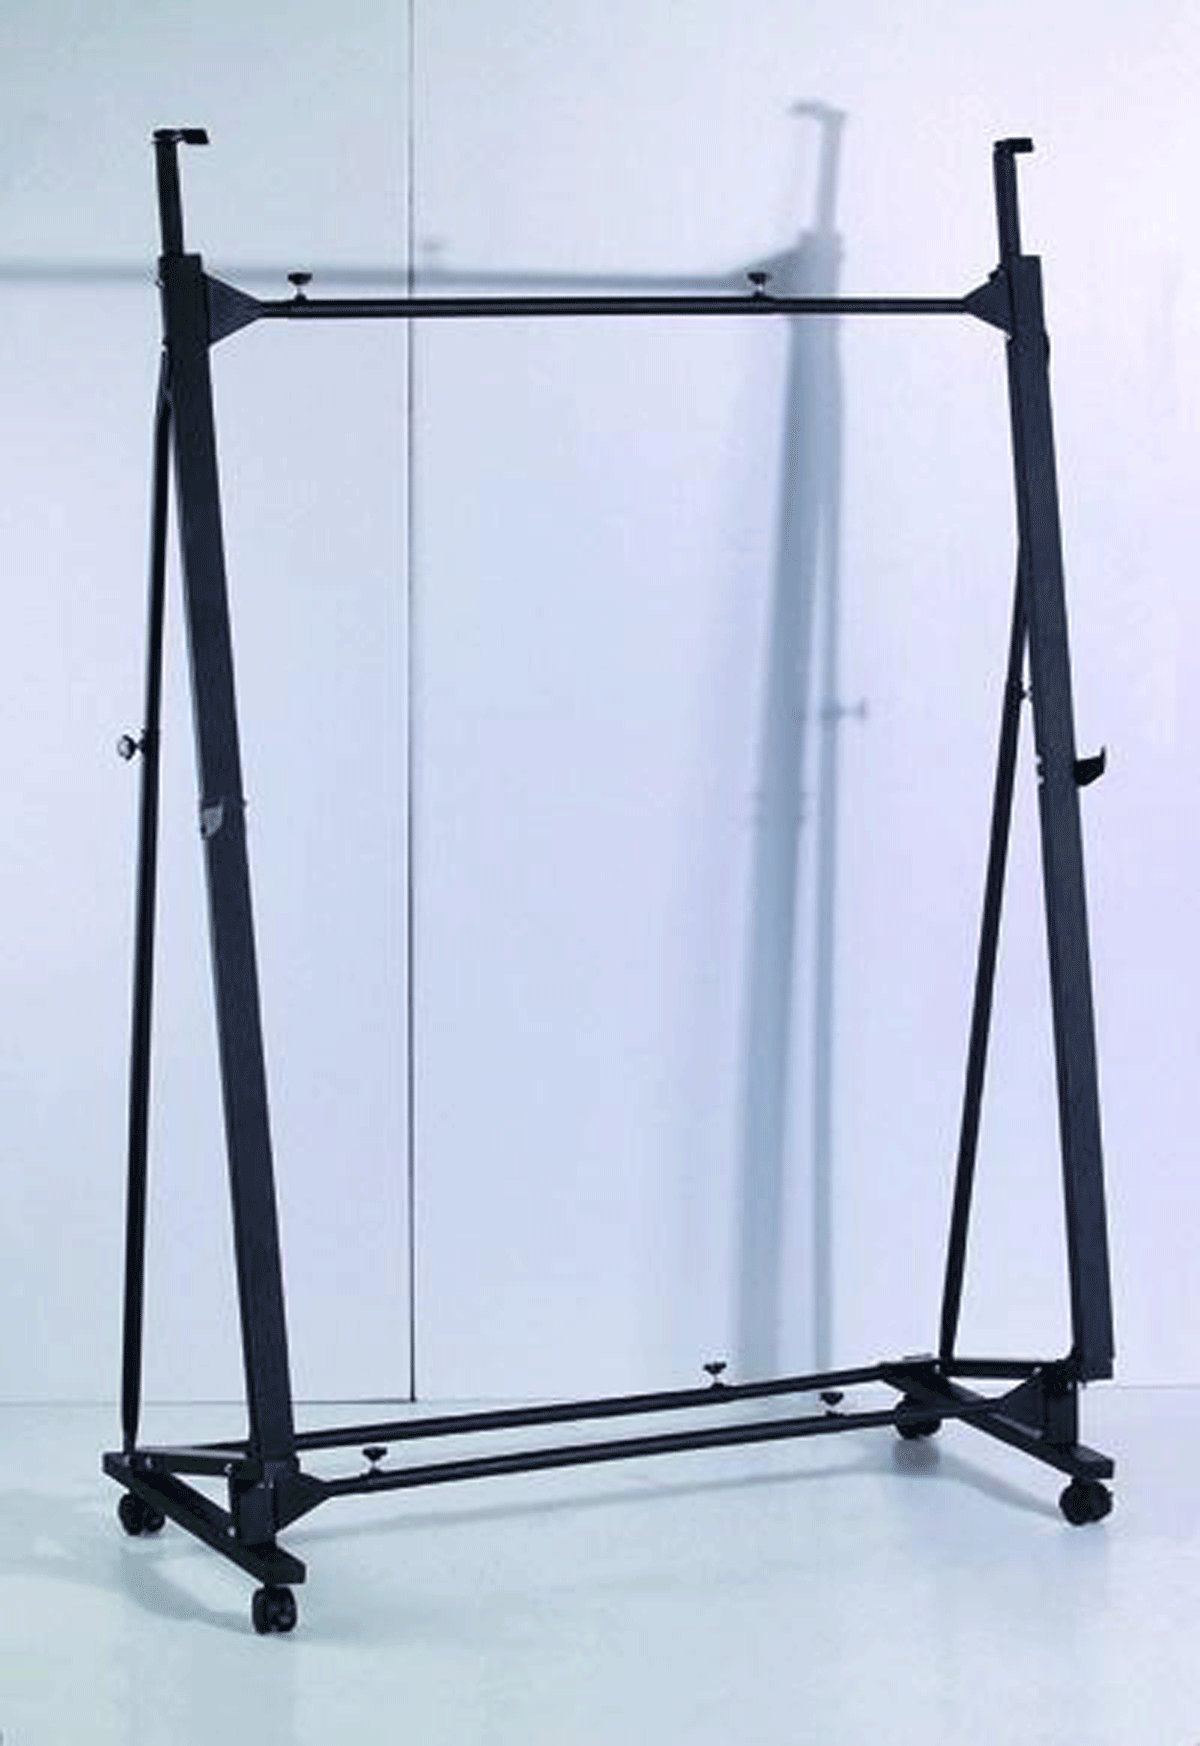 Popowbe Whiteboard frame high pulley movable whiteboard frame display stand meeting whiteboard frame